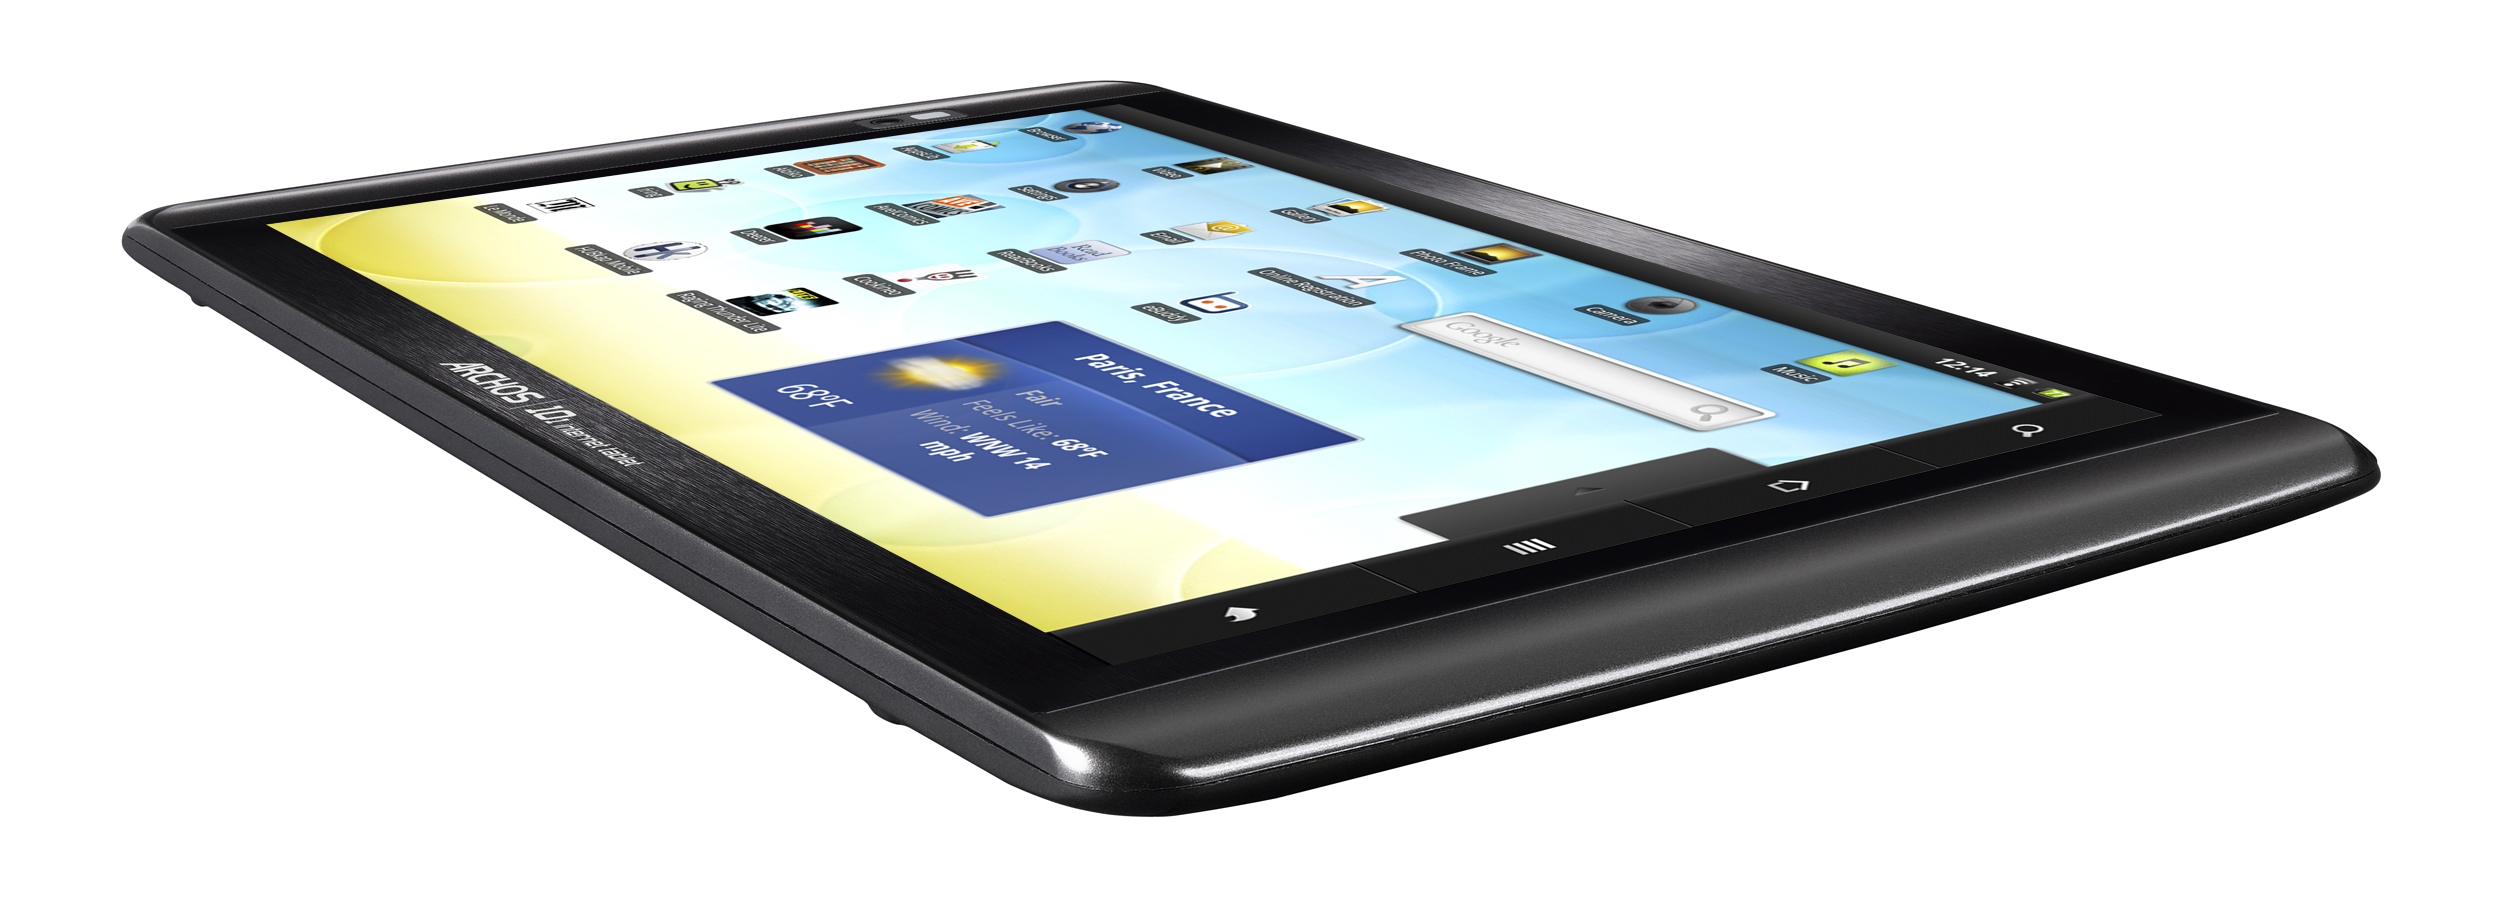 "Archos 101 G8 10.1"" wireless Internet tablet touch screen - designed"